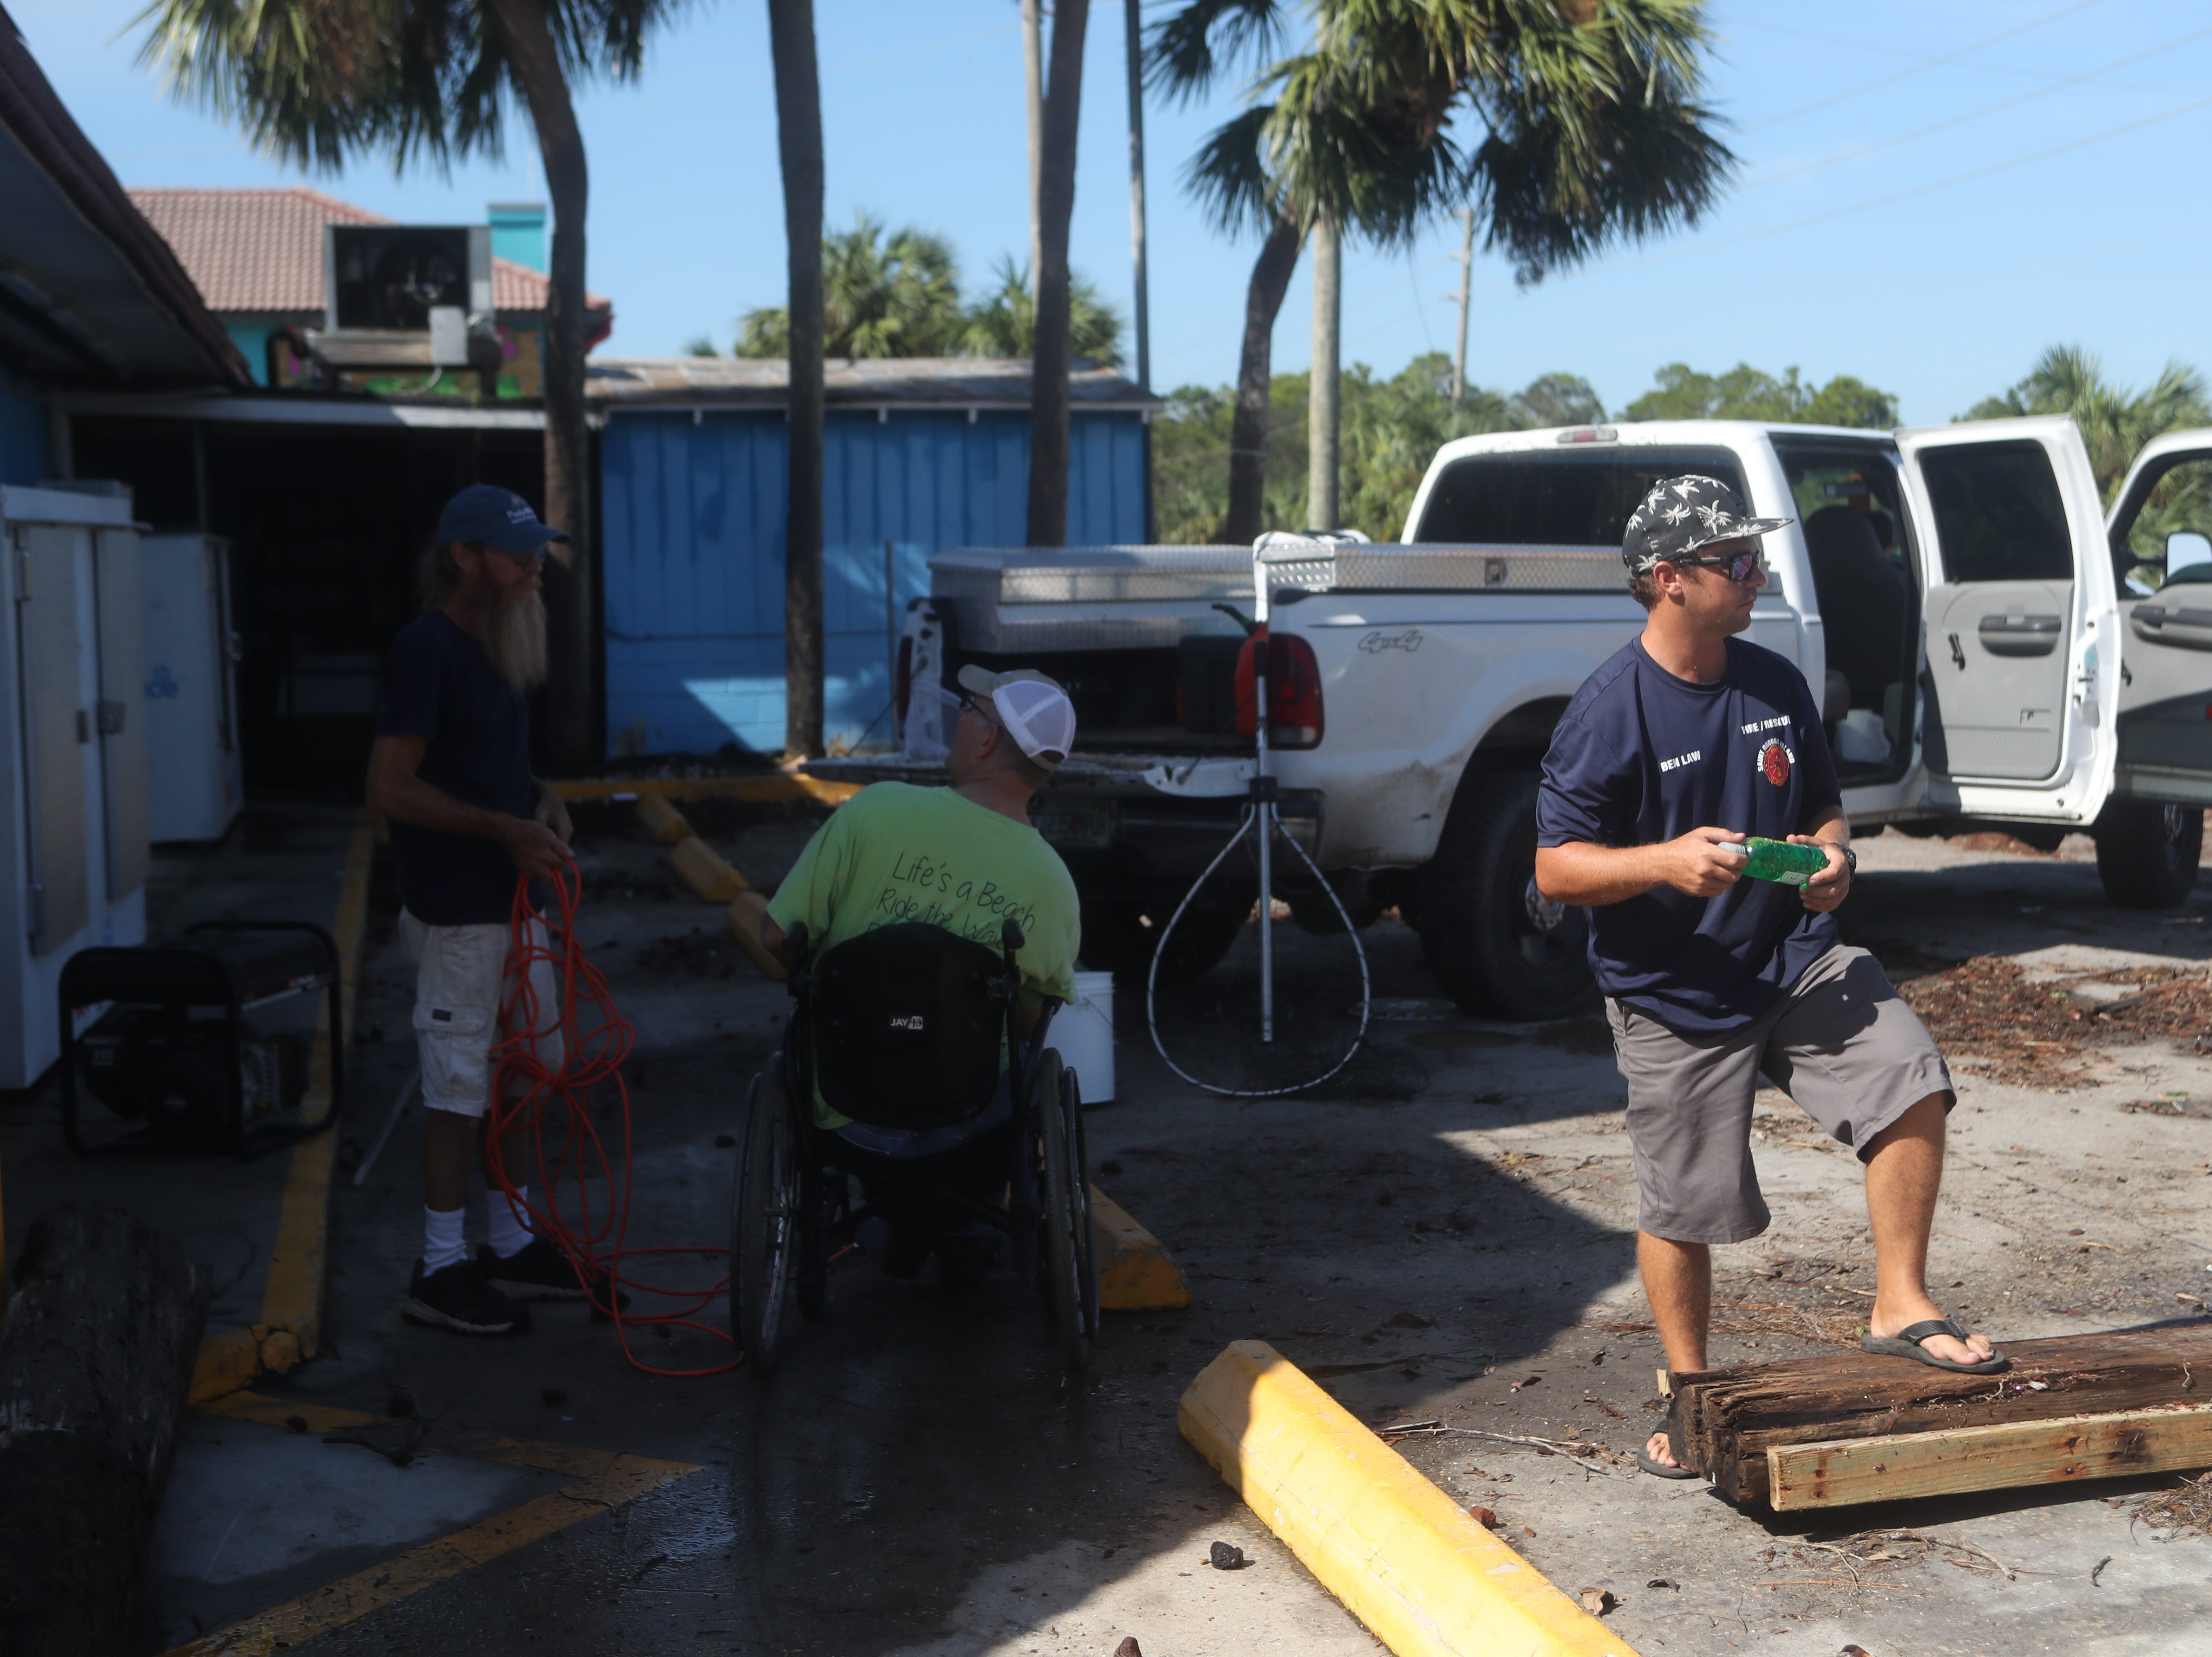 Ben Law helps to clean up around Piggly Wiggly Xpress on St. George Island, Fla. after Hurricane Michael Thursday, Oct. 11, 2018.